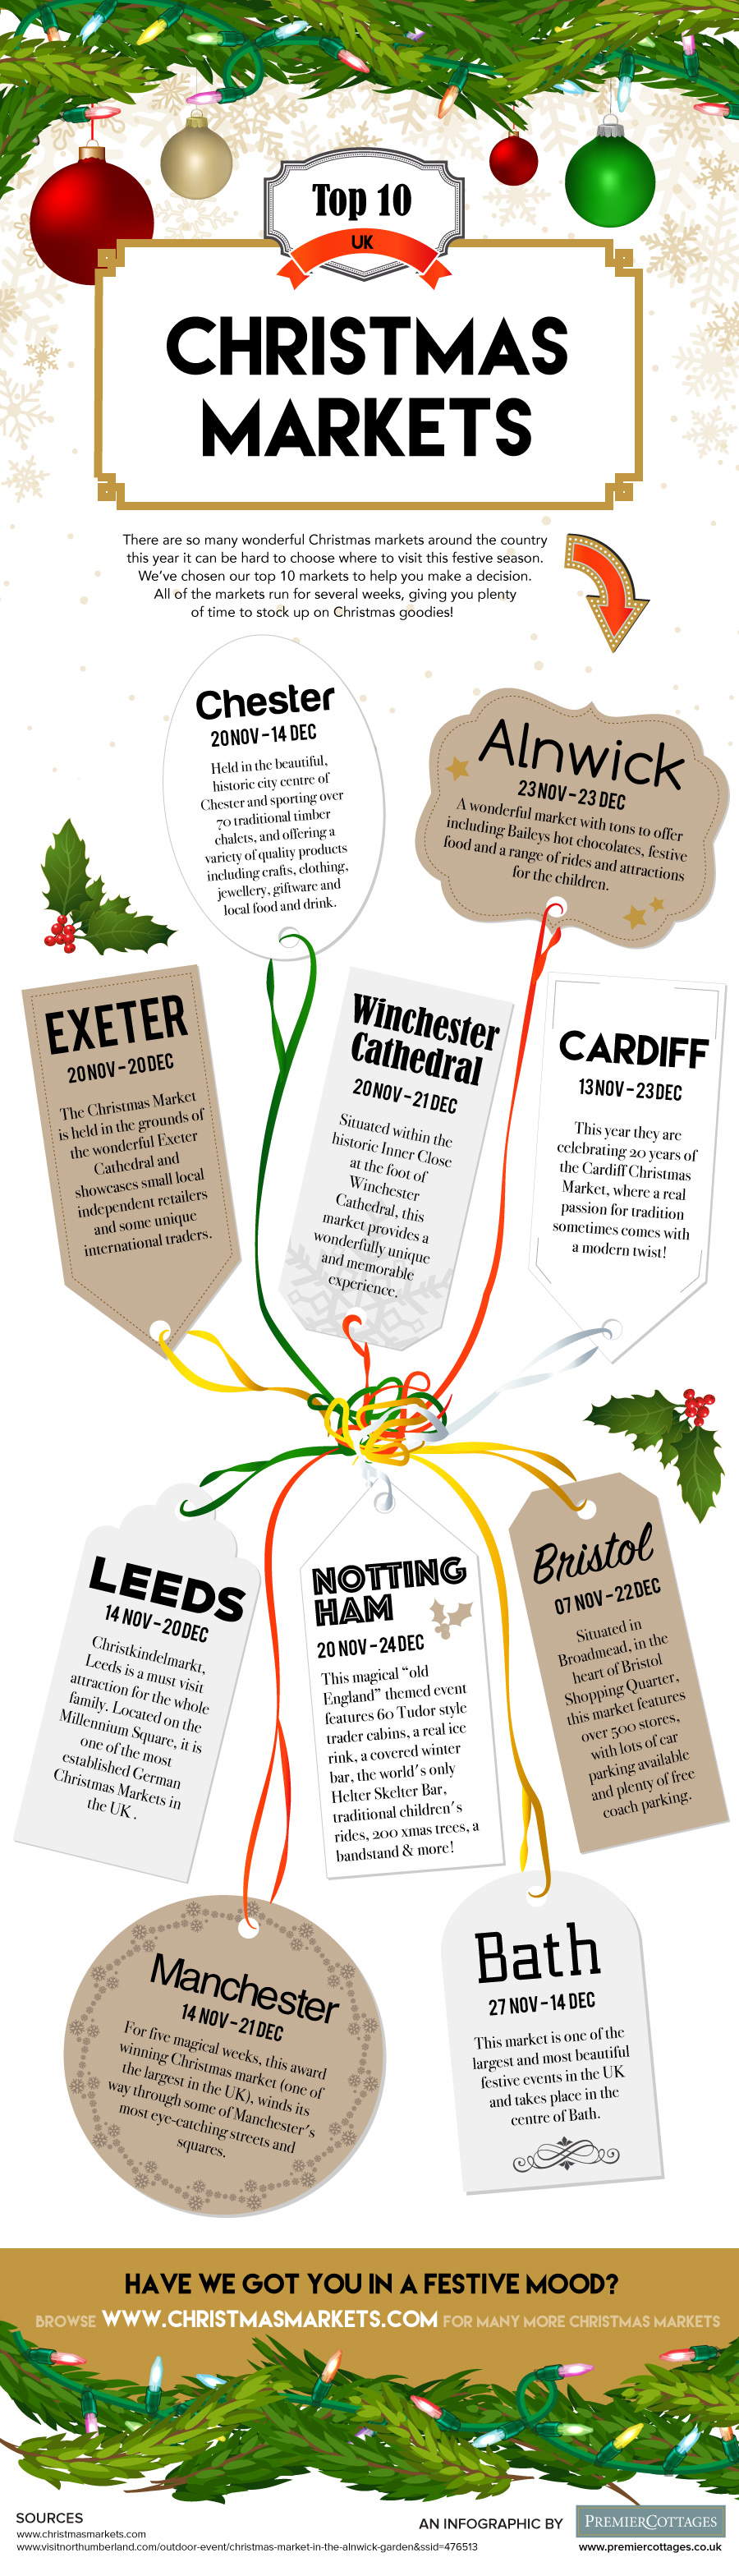 Leaflet of top ten UK Christmas markets